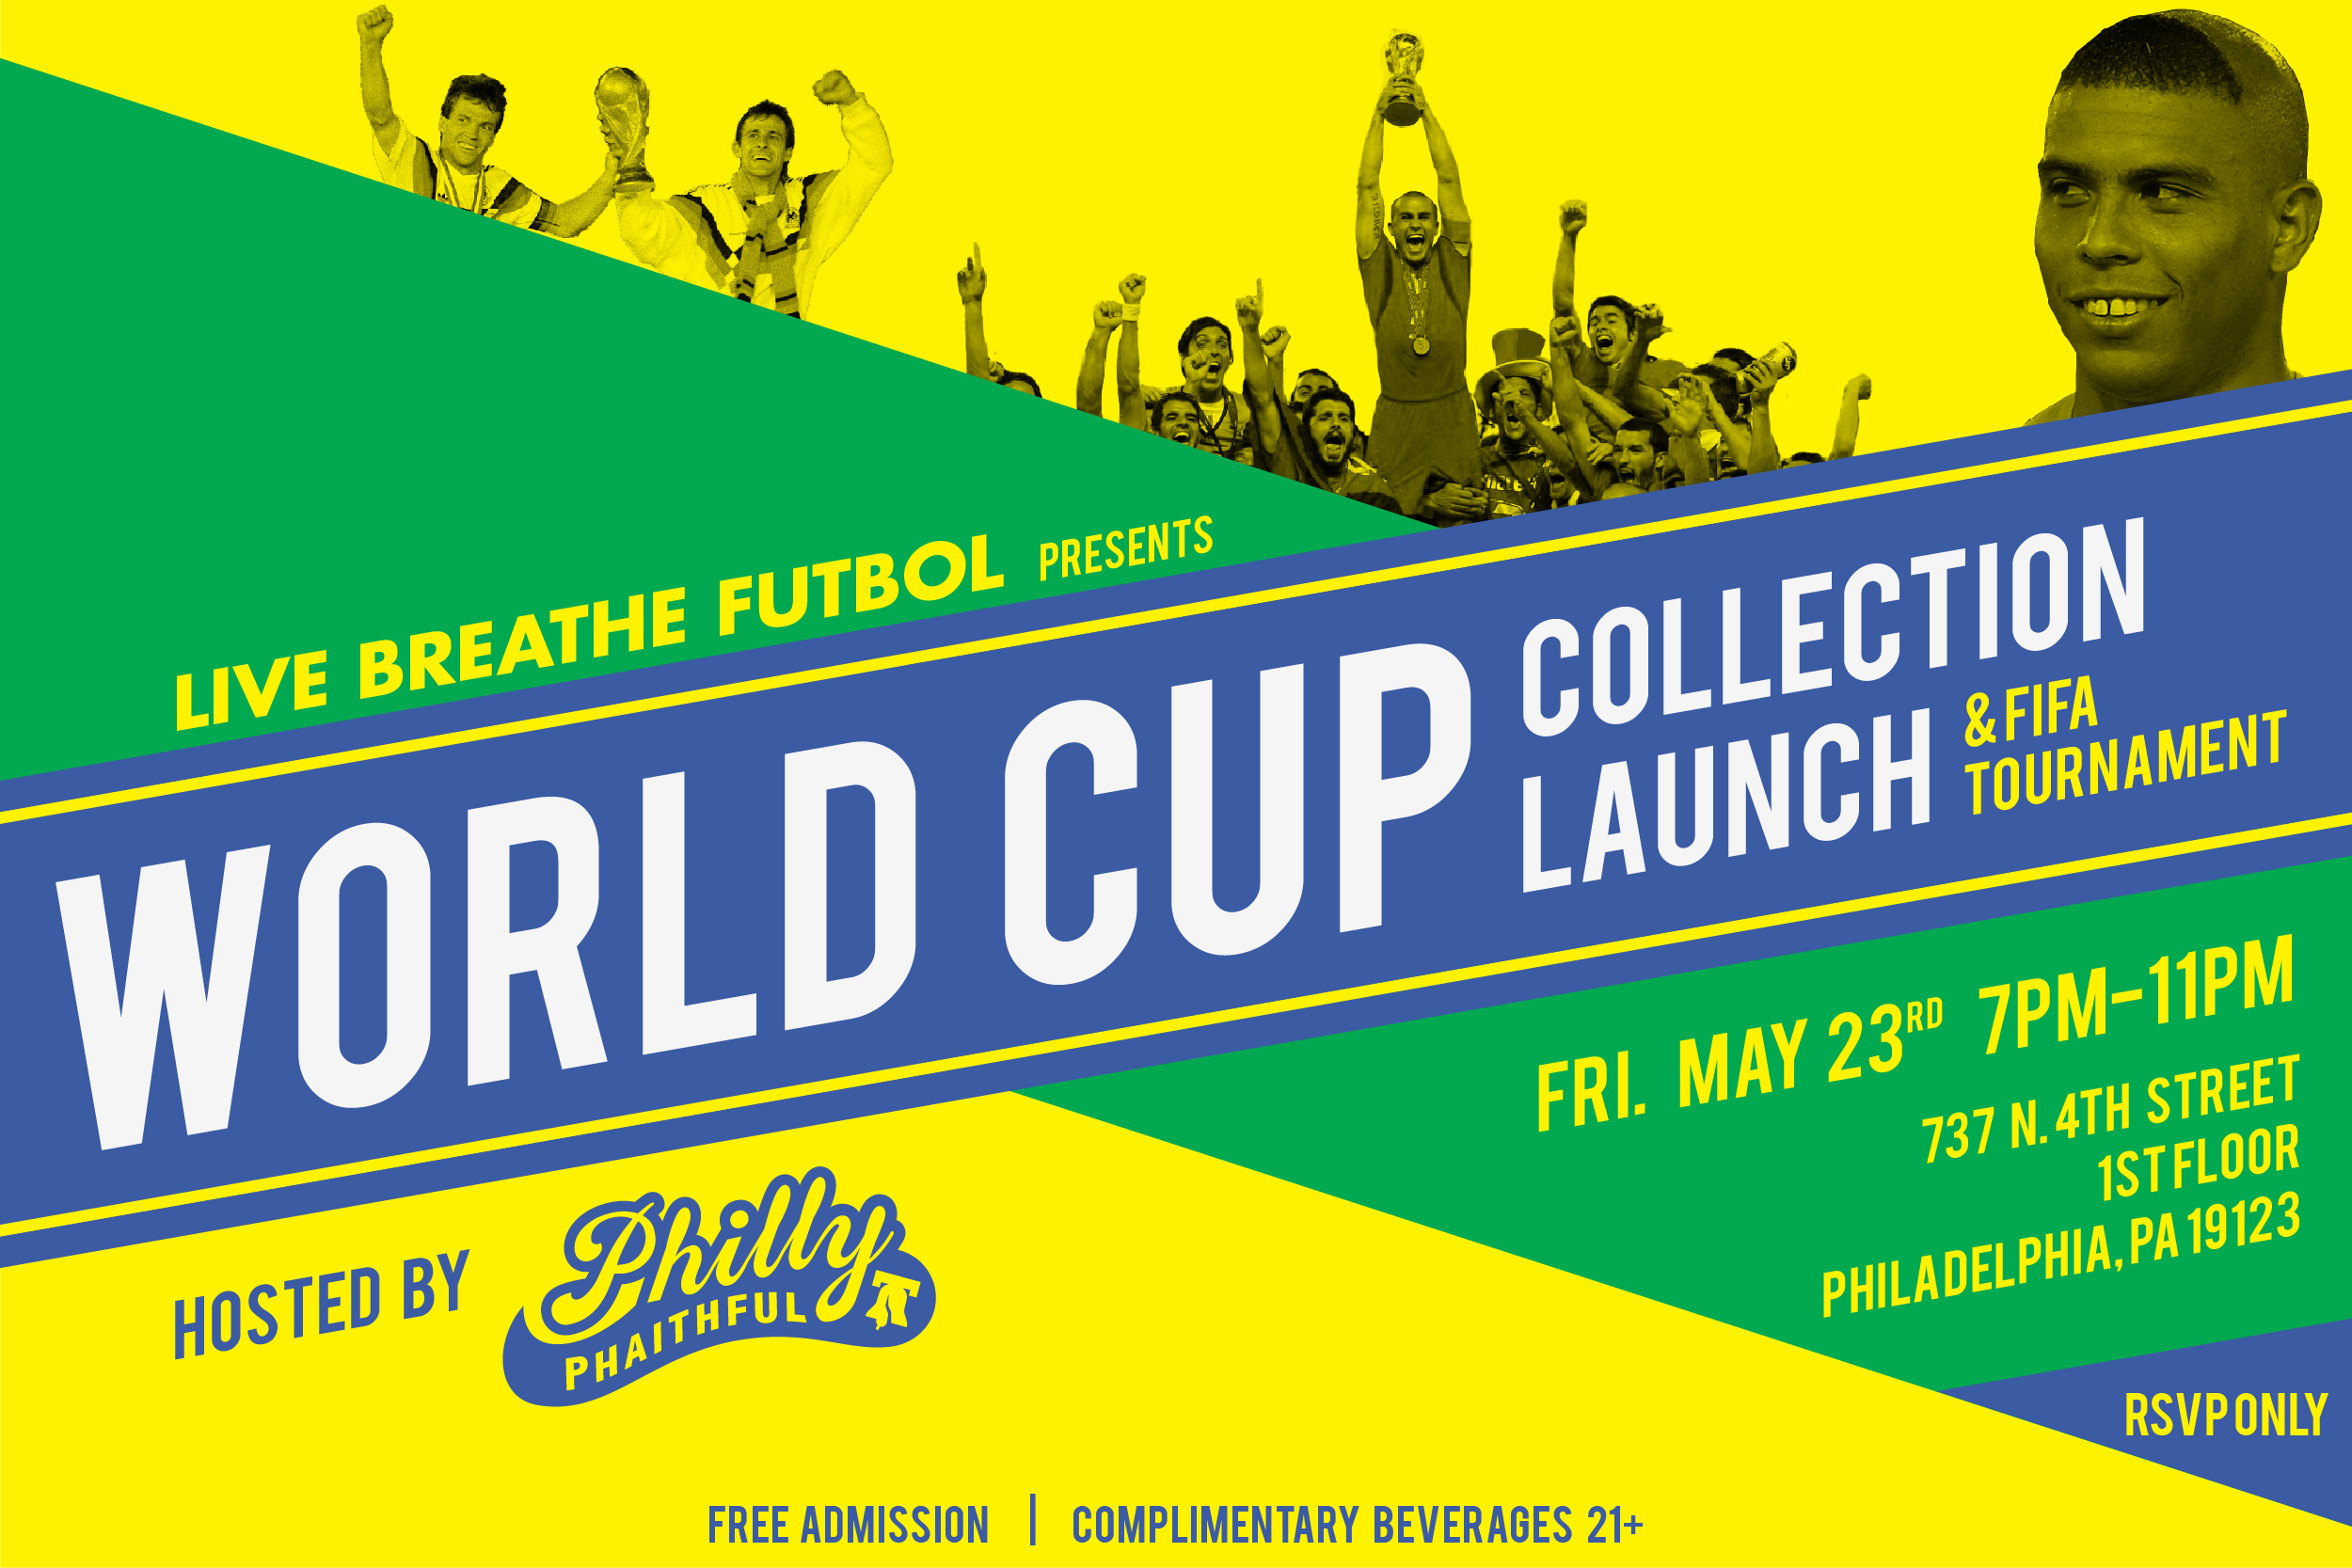 Futbol Live Philly Phaithful Celebrates World Cup With Collection Launch